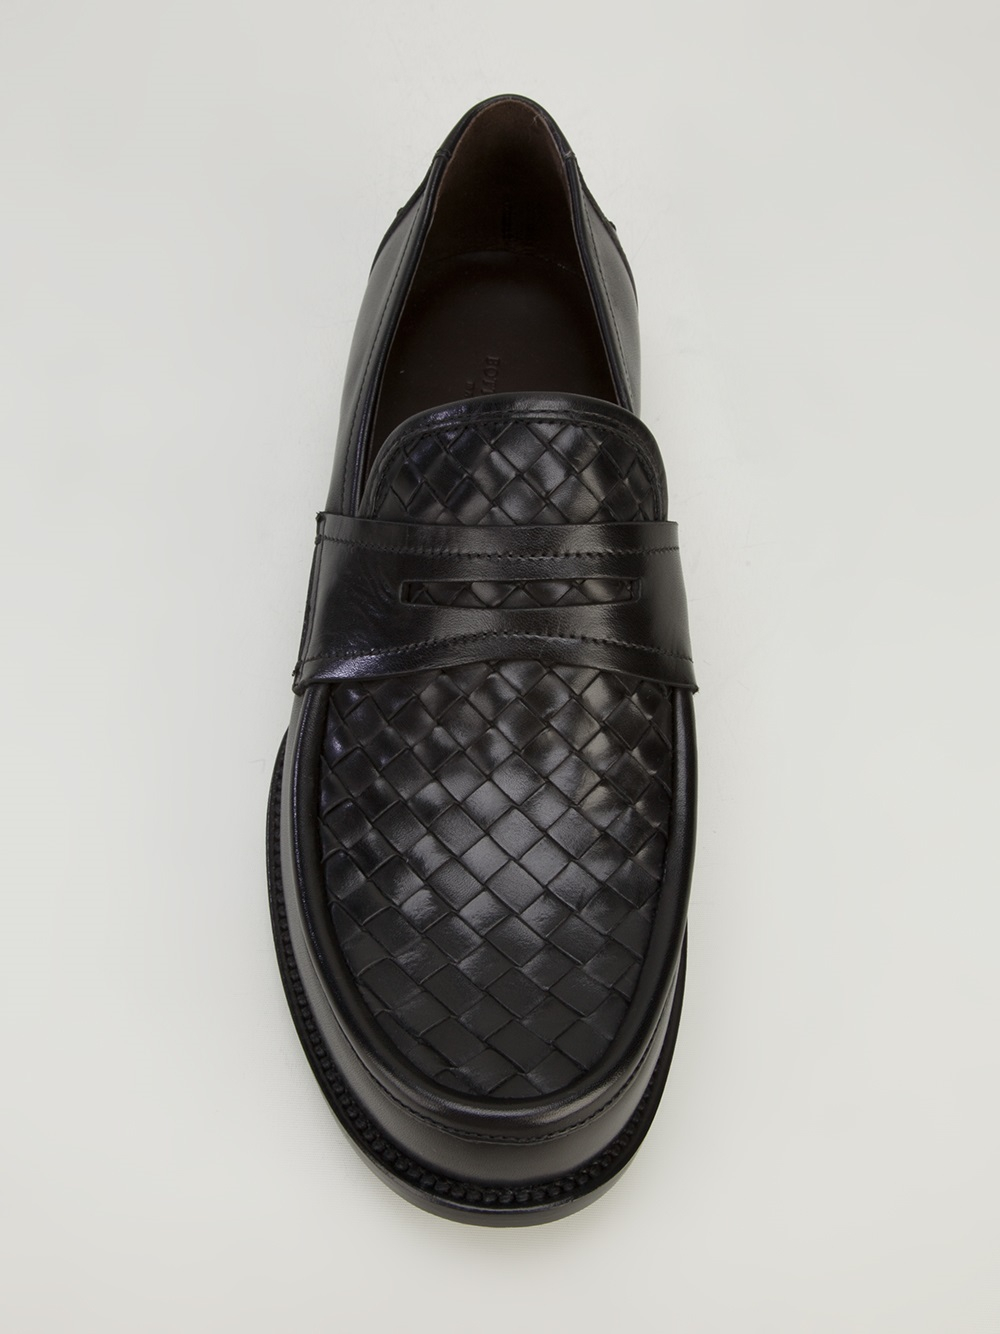 3becec466c Bottega Veneta Intrecciato Penny Loafer in Black for Men - Lyst